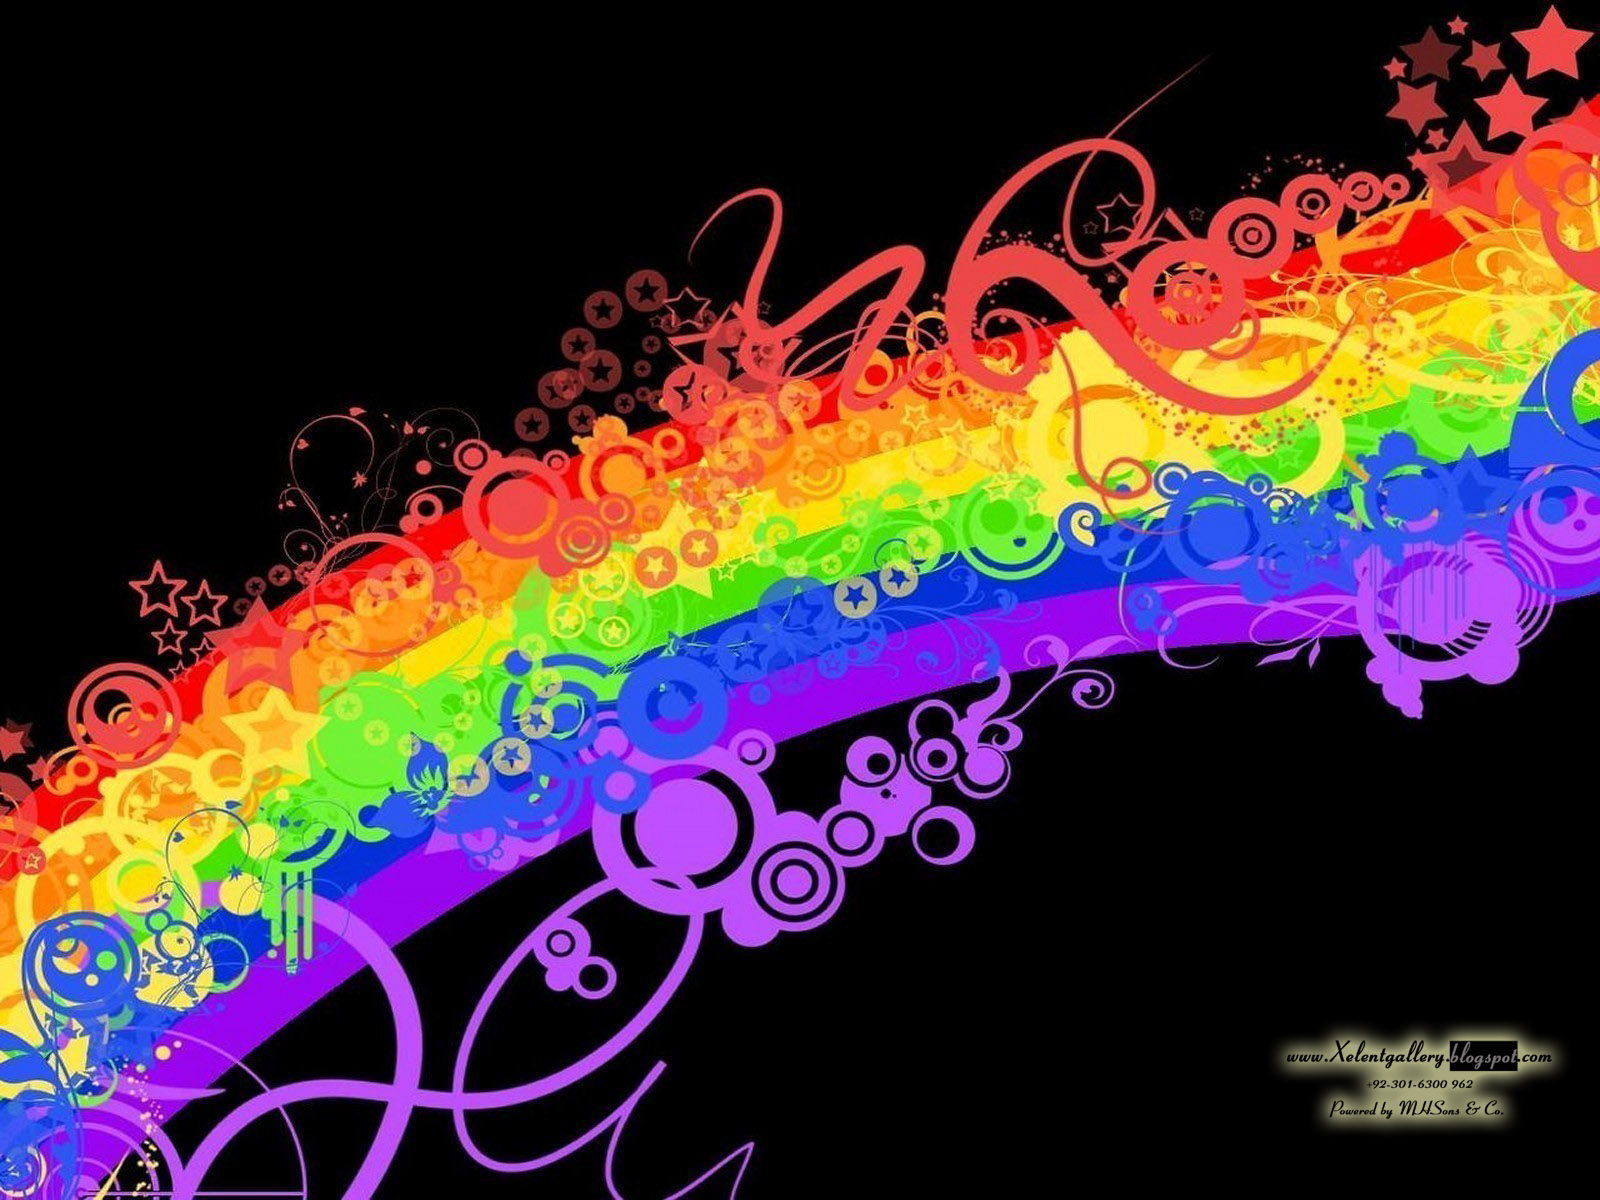 http://4.bp.blogspot.com/-WDKShw88kbc/T-CaZs6U3sI/AAAAAAAACDc/bLVvHqjhGBQ/s1600/Colourful+Abstract+Wallpapers+%25284%2529.JPG